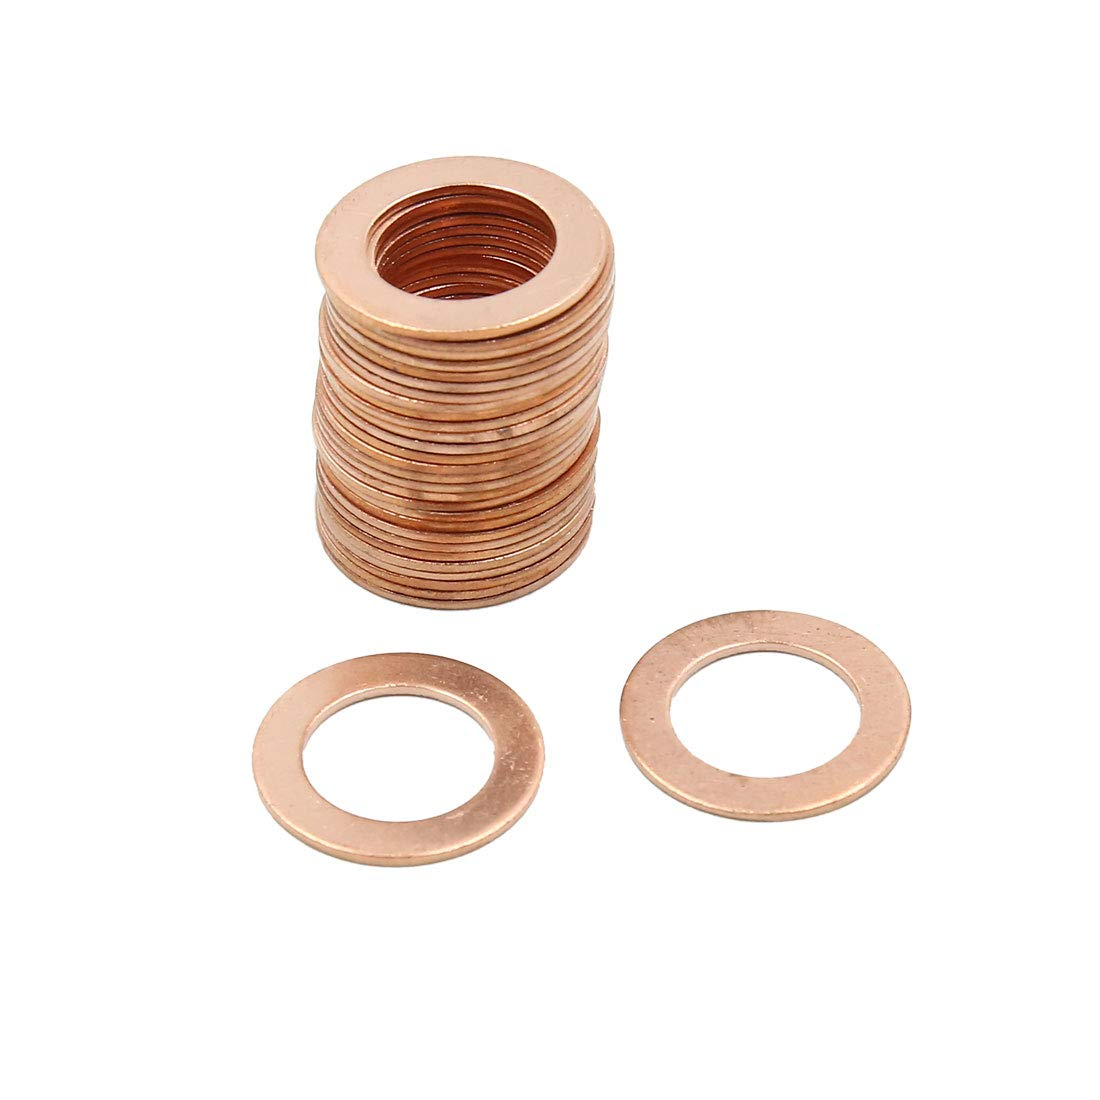 X AUTOHAUX 14.5mm Inner Dia Copper Crush Washers Flat Car Sealing Gaskets Rings 30pcs by X AUTOHAUX (Image #1)